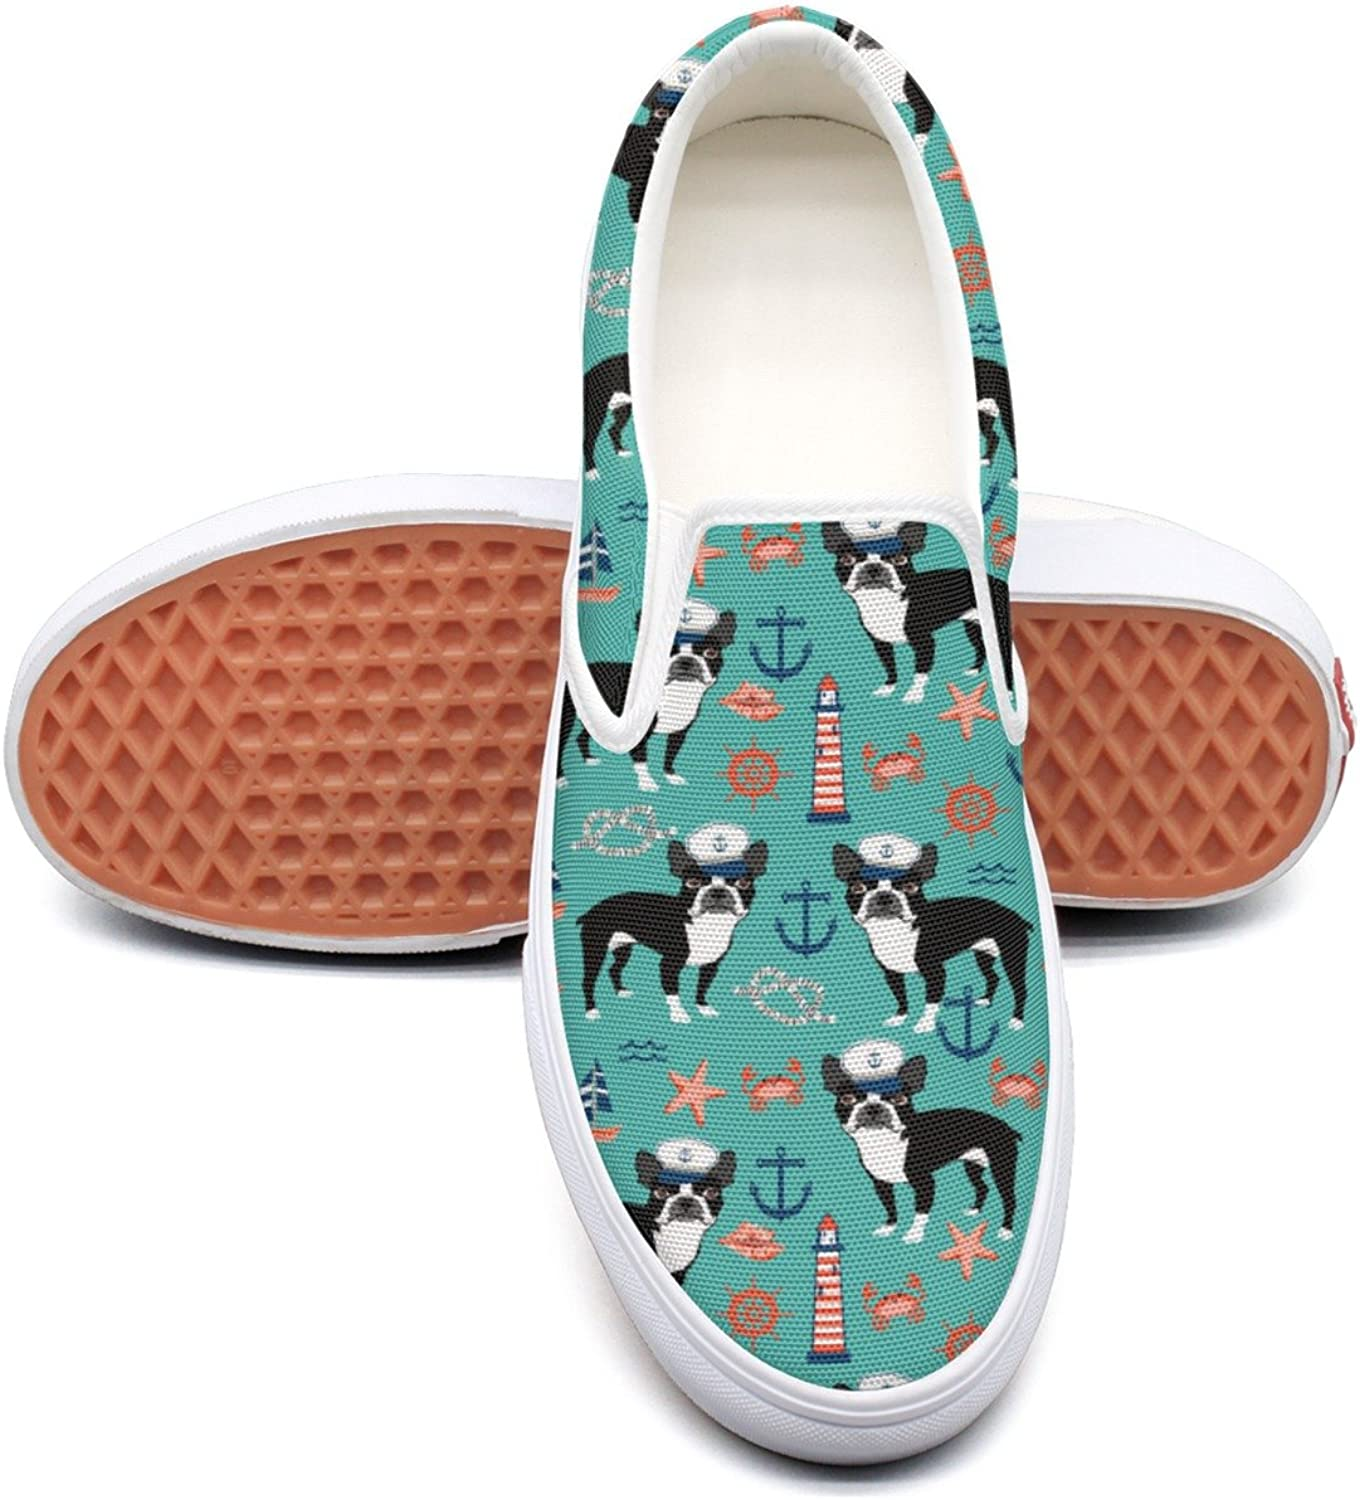 SEERTED Nautical Boston Terrier Dog Light House Casual Sneakers for Women Wide Width